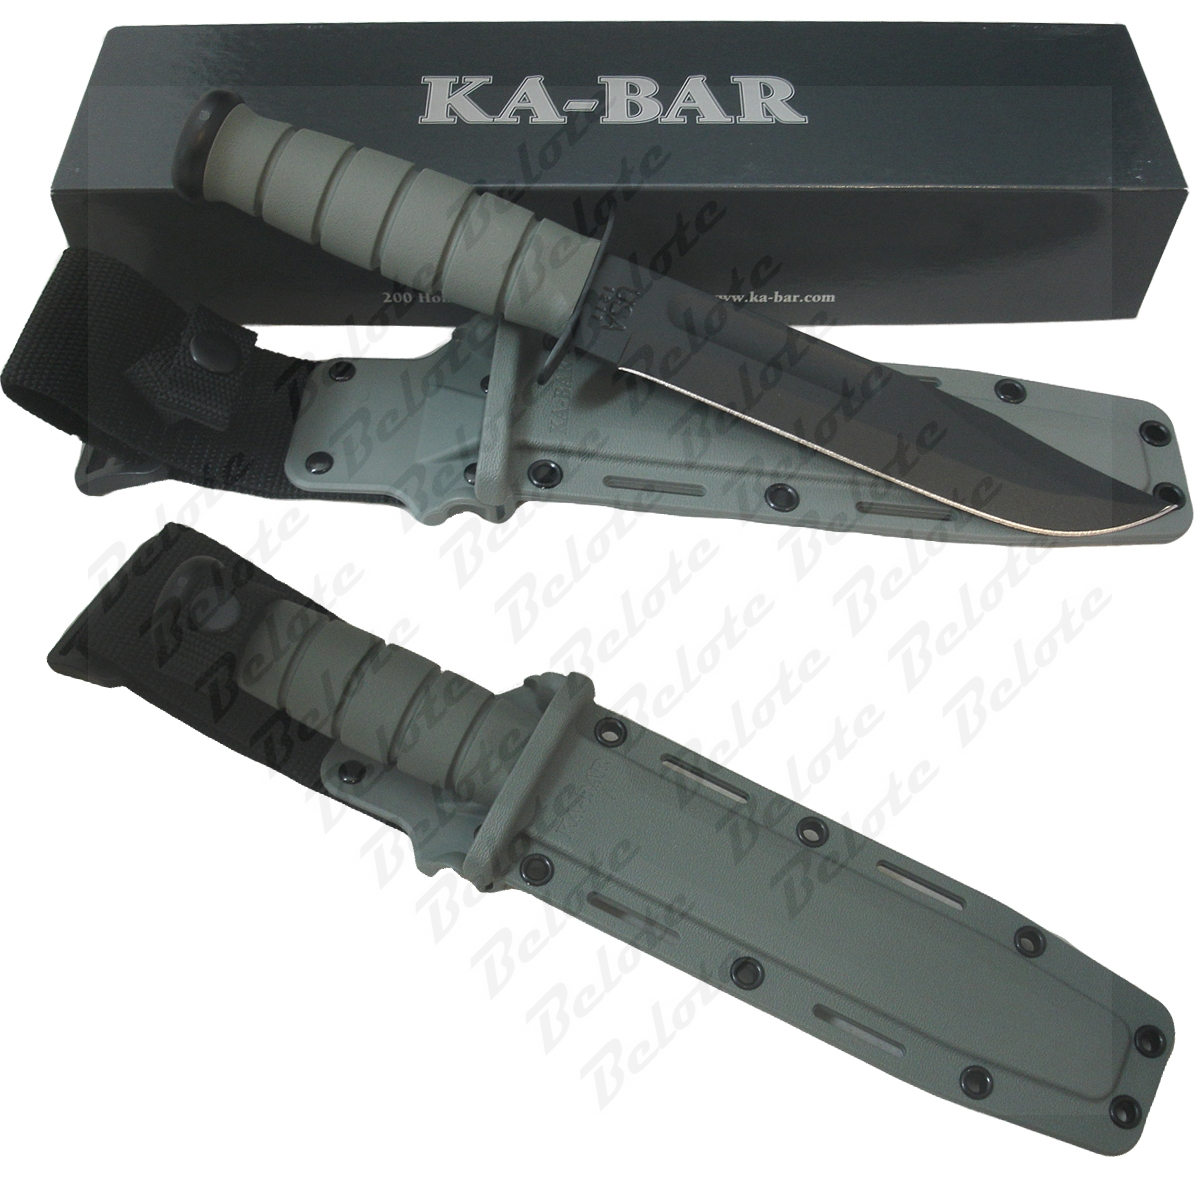 U S Servicemen And Servicewomen Civilians Alike Asked For A Foliage Green Version Of The Well Known Black Ka Bar Here It Is